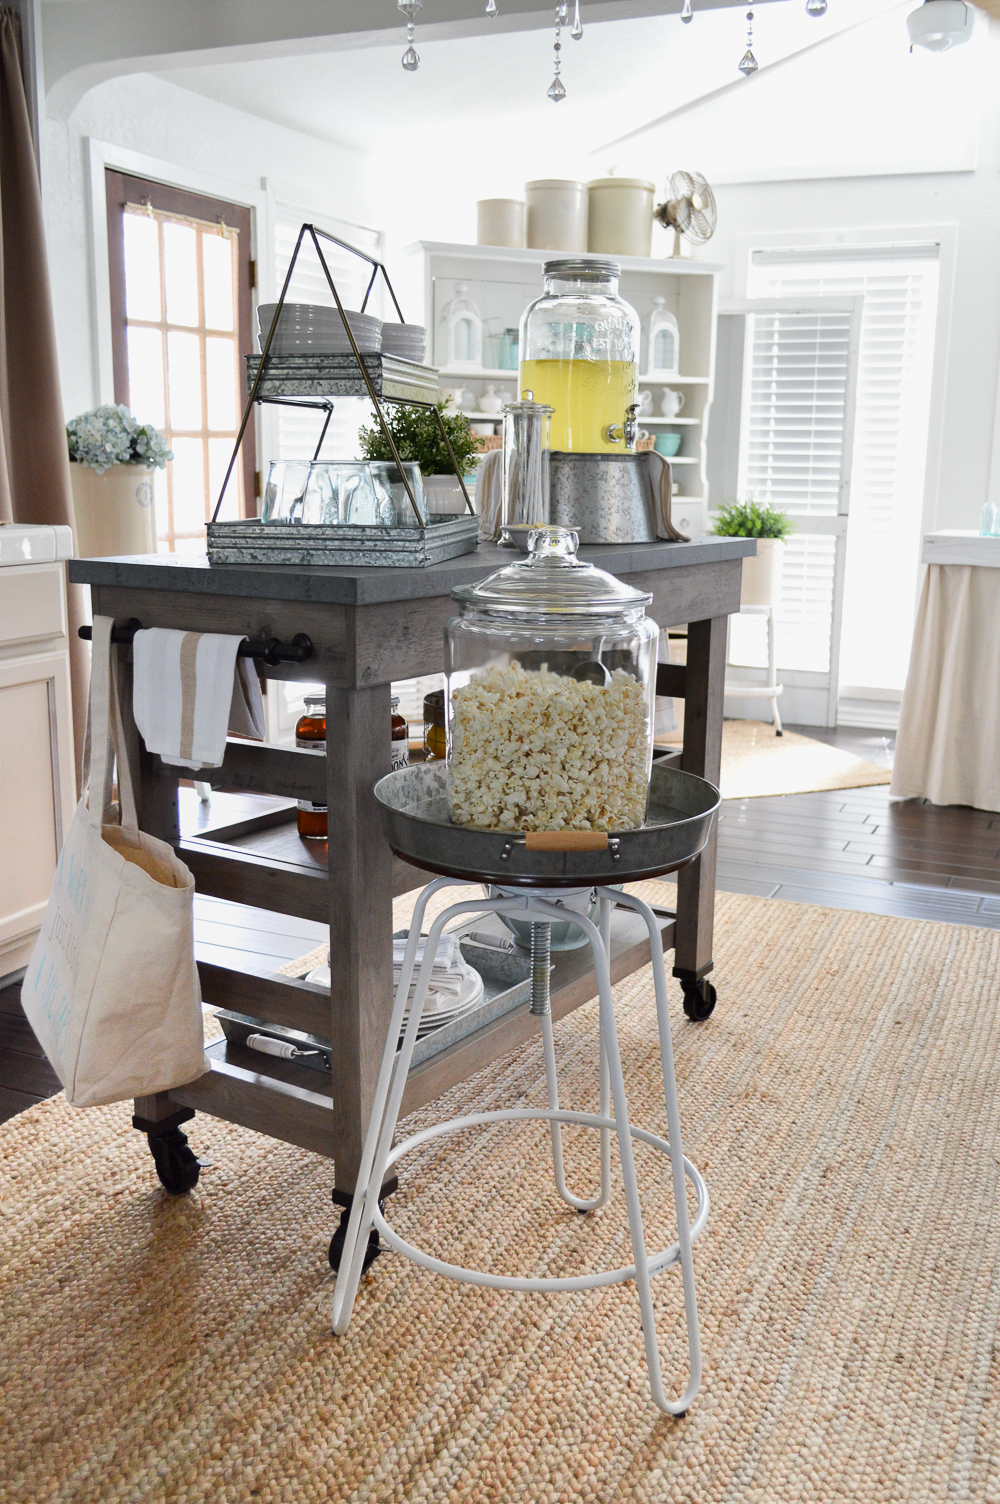 modern farmhouse multi purpose cart kitchen island as movie night snack bar cart at foxhollowcottage - Farmhouse Kitchen Island